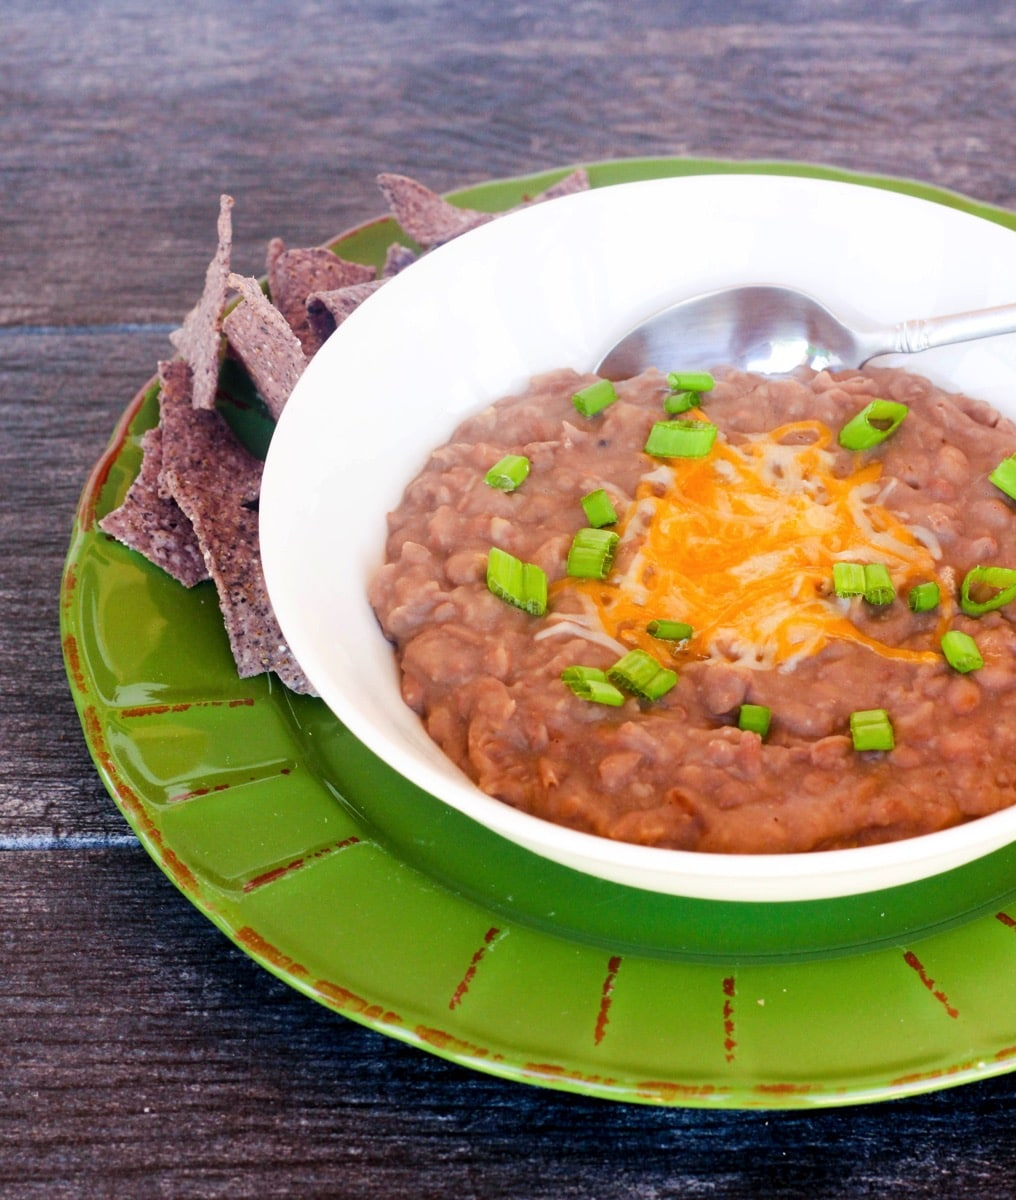 Homemade Baked Refried Beans